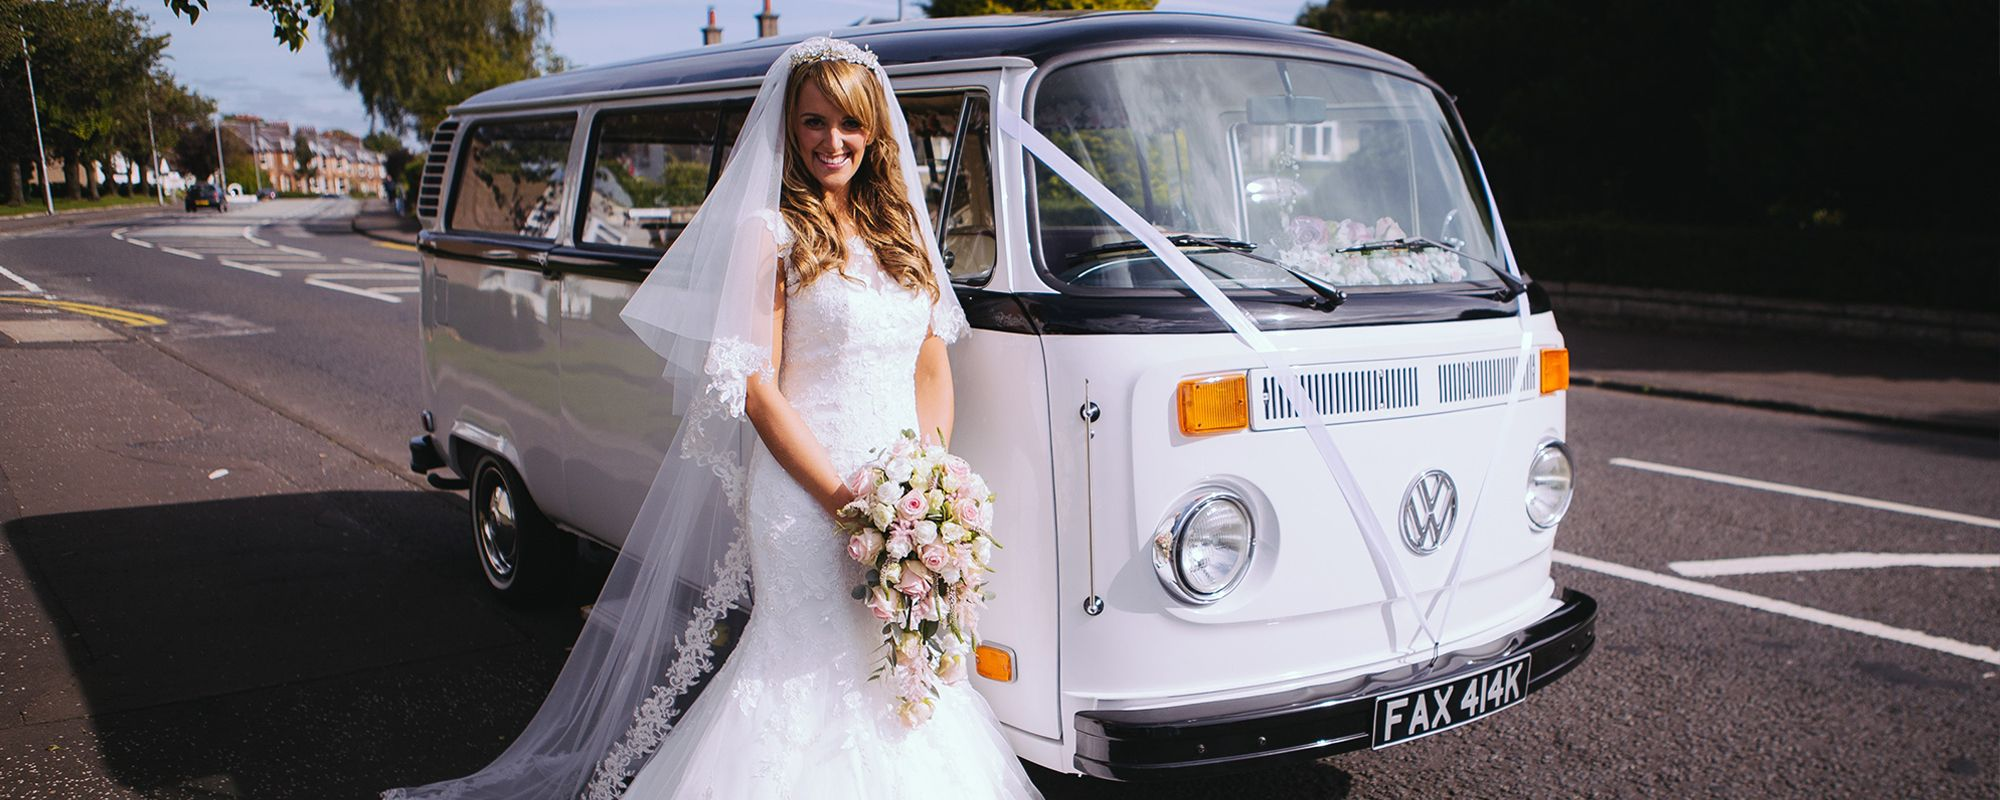 Wedding Car Hire Glasgow